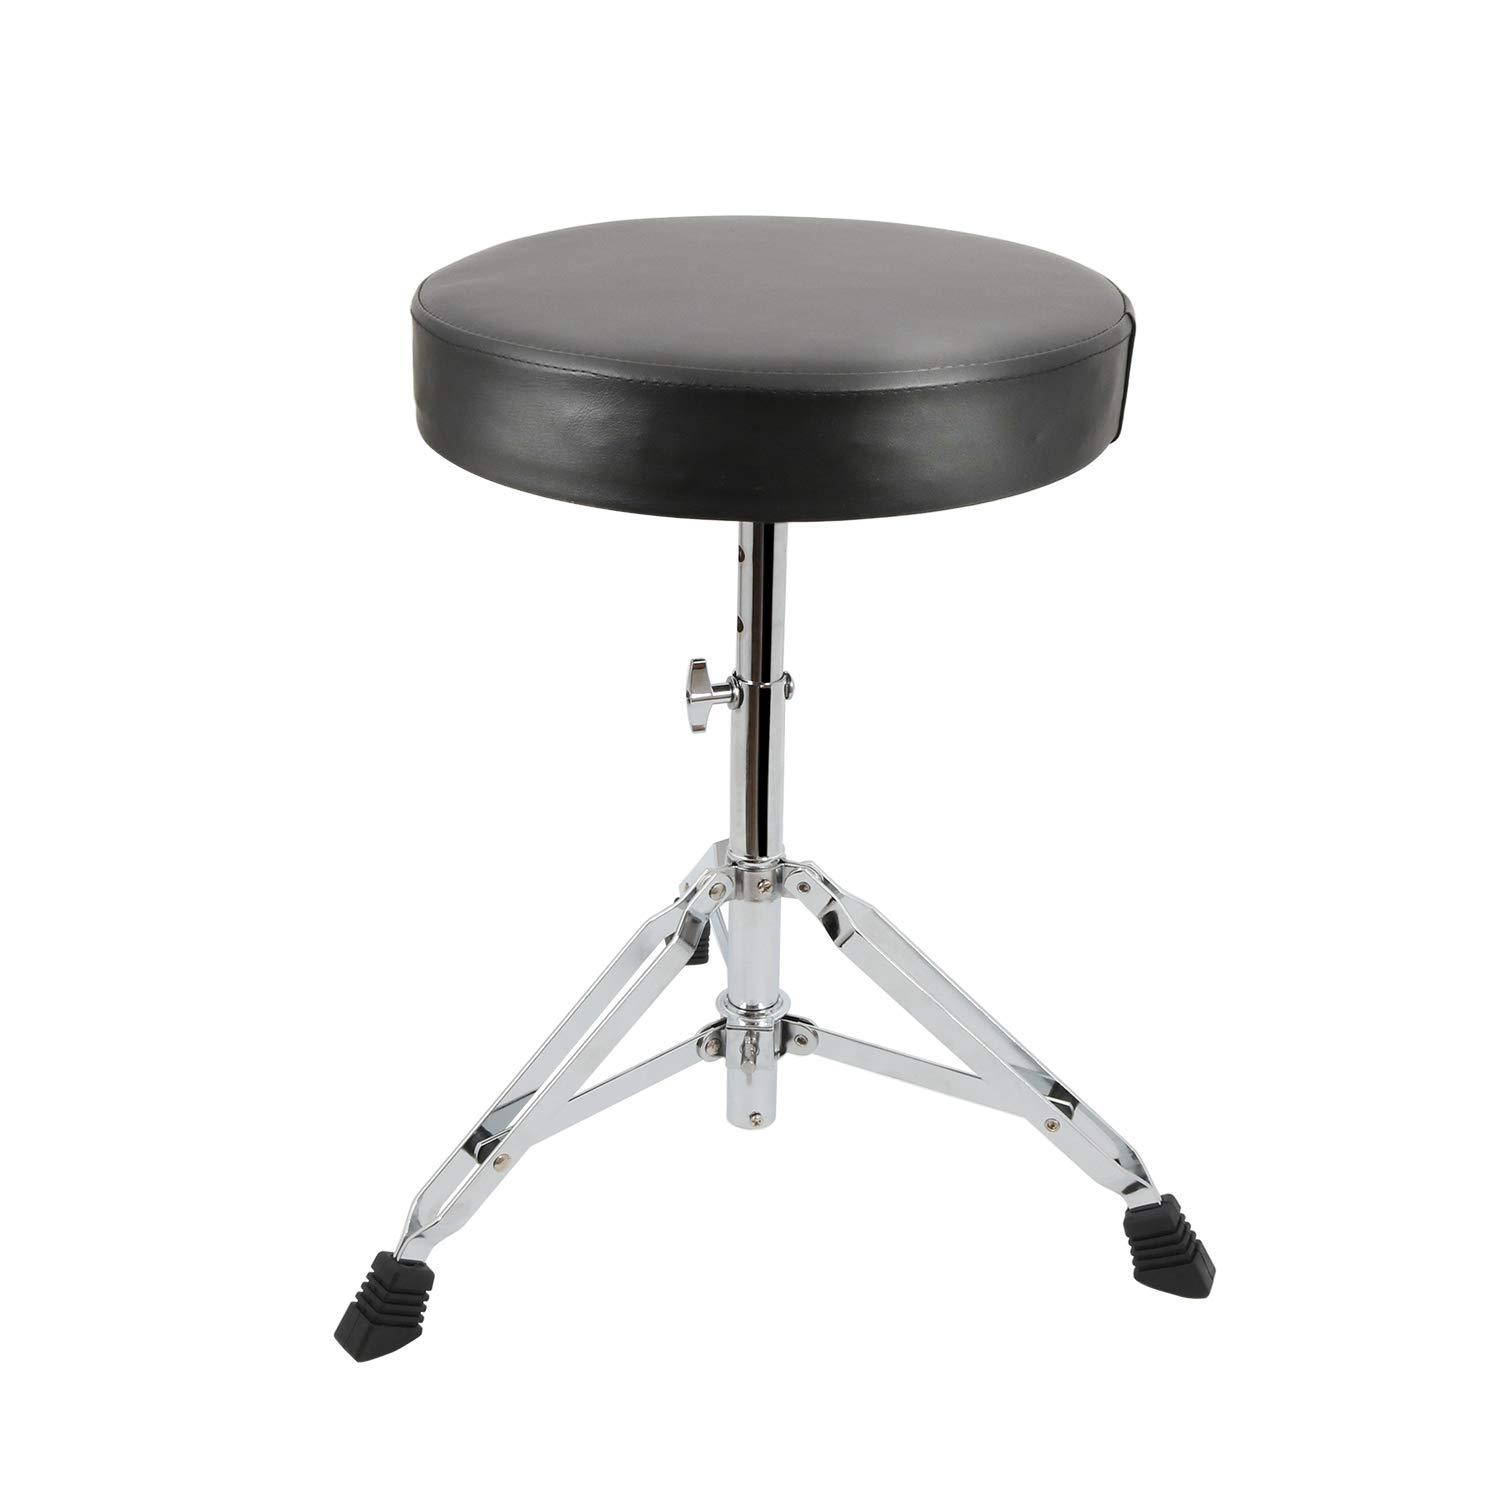 EastRock Universal Drum Throne,Padded Drum Seat Rotatable Height Adjustable drumming Stools with Anti-Slip Feet for Adults and Kids